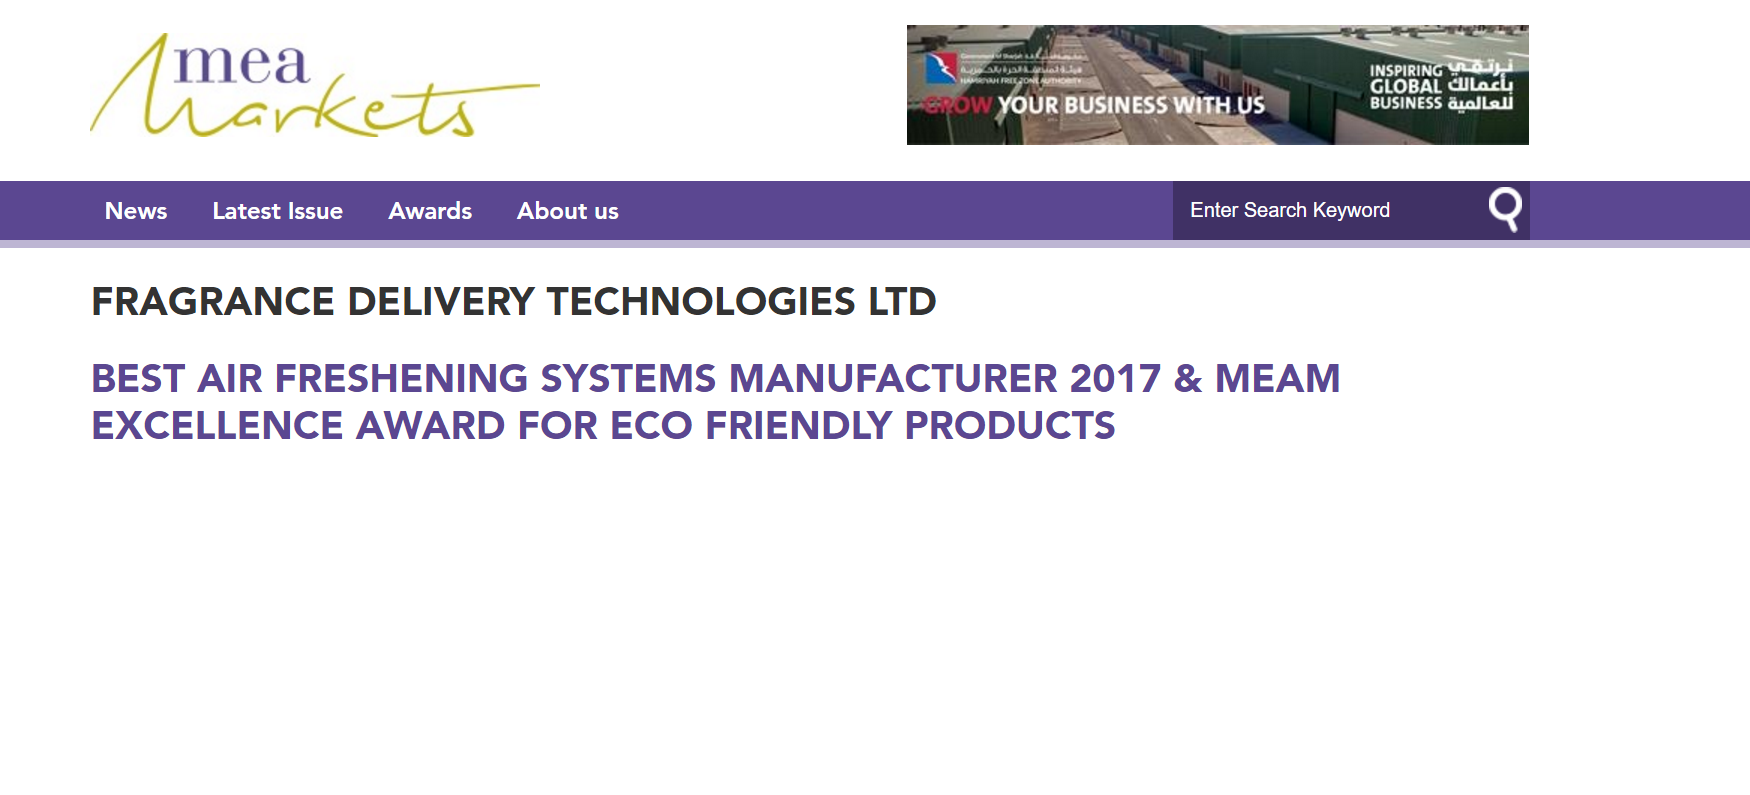 FRAGRANCE DELIVERY TECHNOLOGIES LTD BEST AIR FRESHENING SYSTEMS MANUFACTURER 2017 & MEAM EXCELLENCE AWARD FOR ECO FRIENDLY PRODUCTS